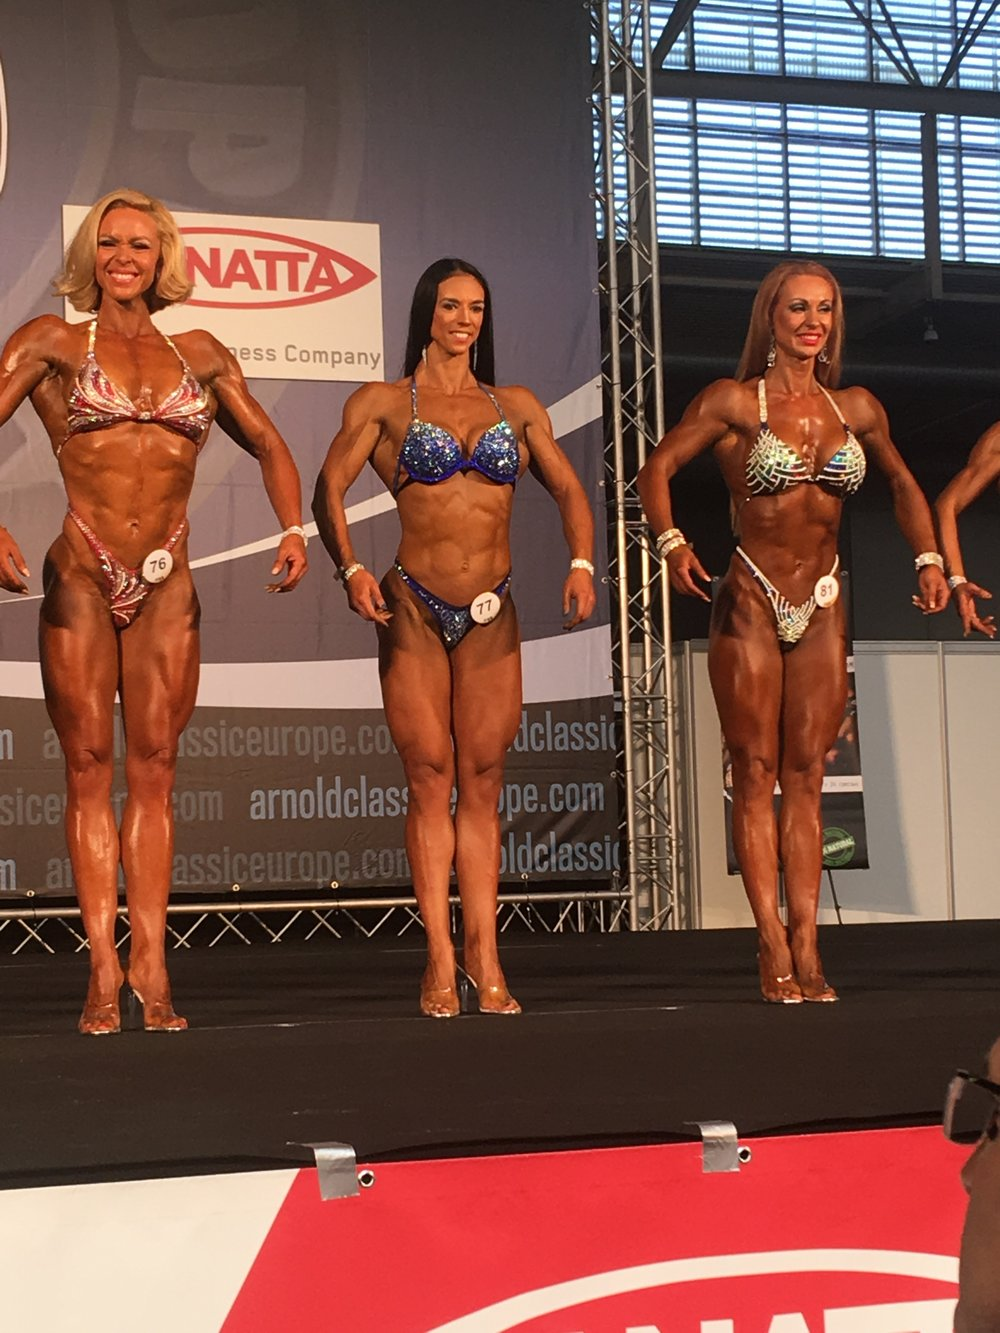 Olga Upelniece (centre) has made the top six in a 20-strong masters bodyfitness line-up.